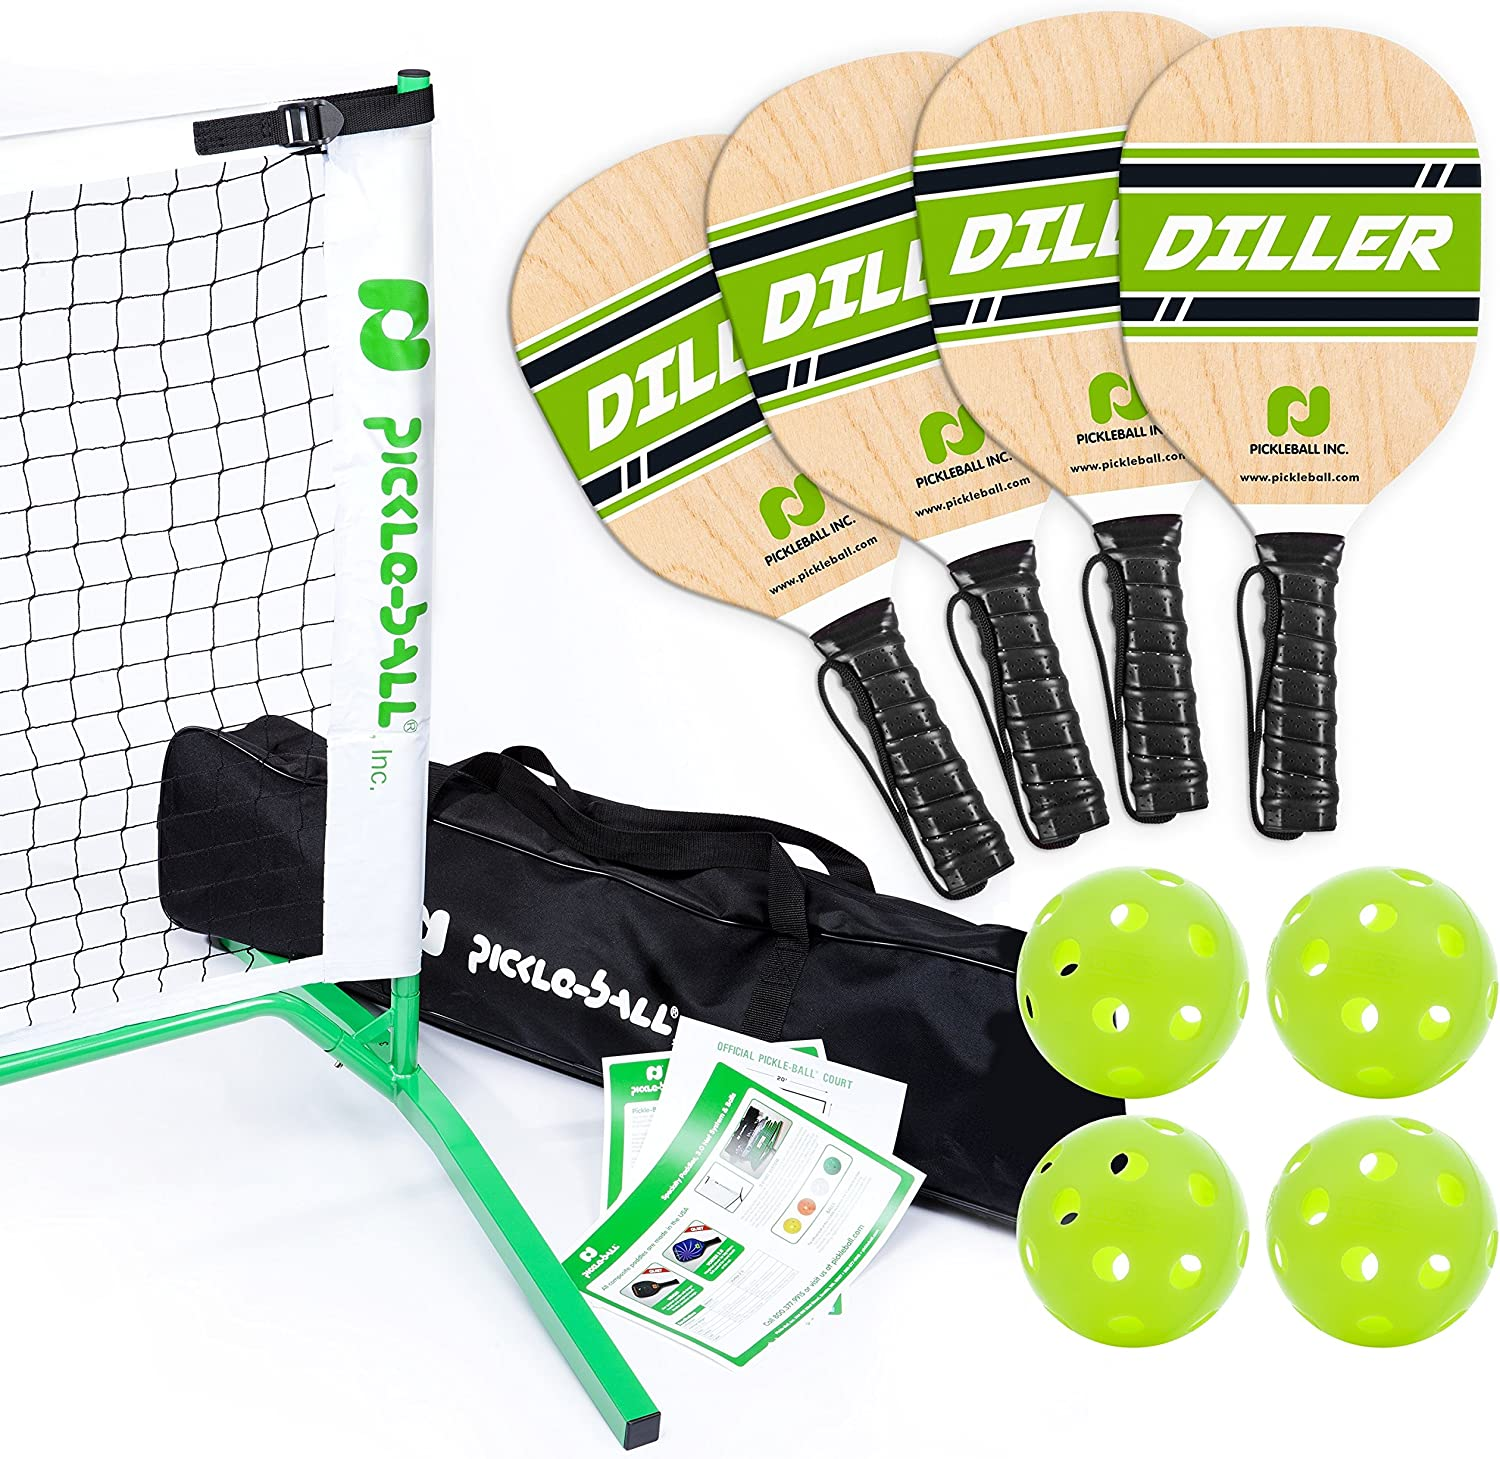 Pickle-Ball Inc. Pickleball Diller Incl SEAL limited product Set Net Tournament Tulsa Mall